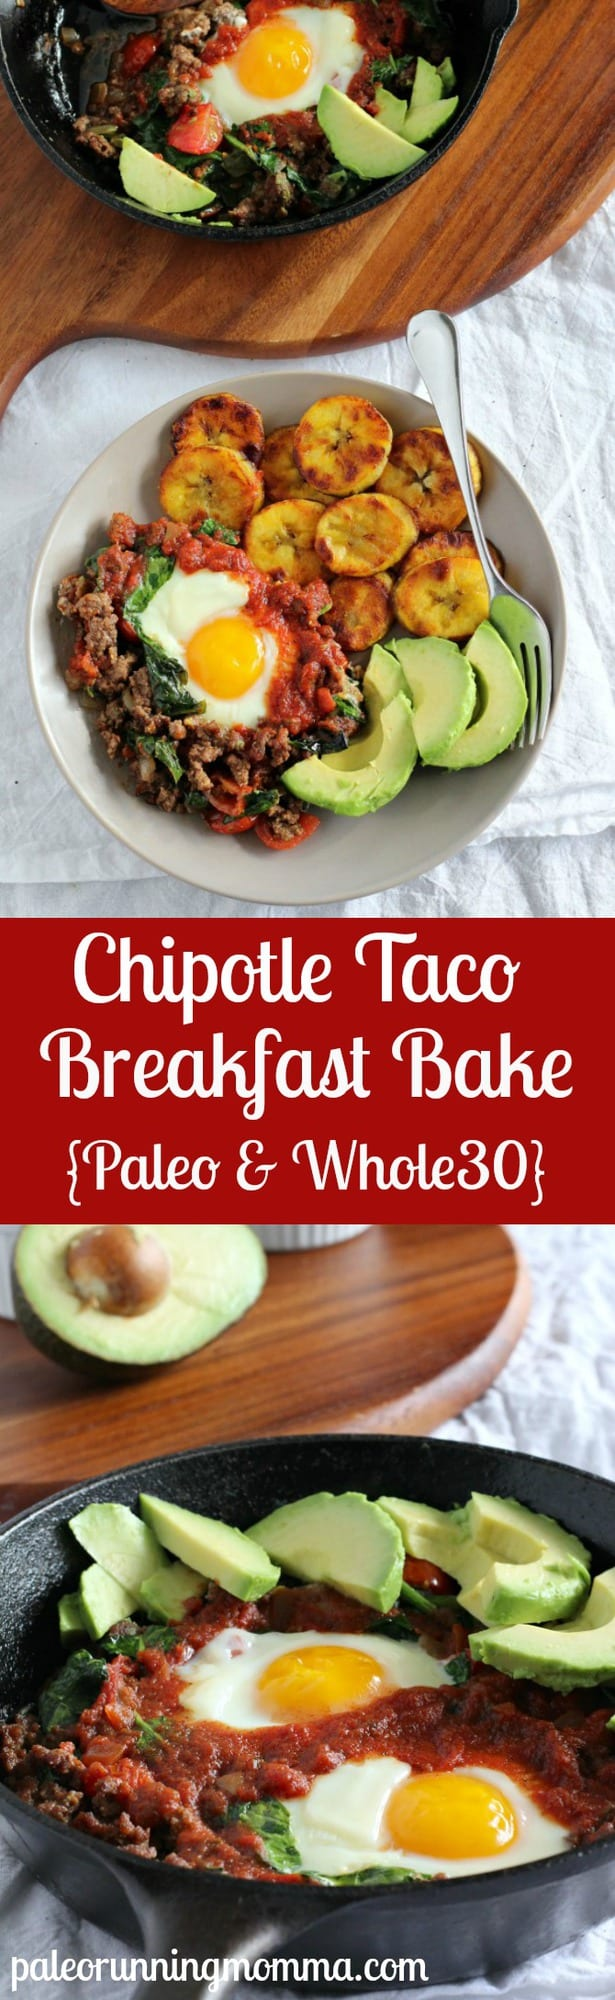 Chipotle Taco Breakfast Bake {Paleo & Whole30} #grainfree #paleo #dairyfree #glutenfree